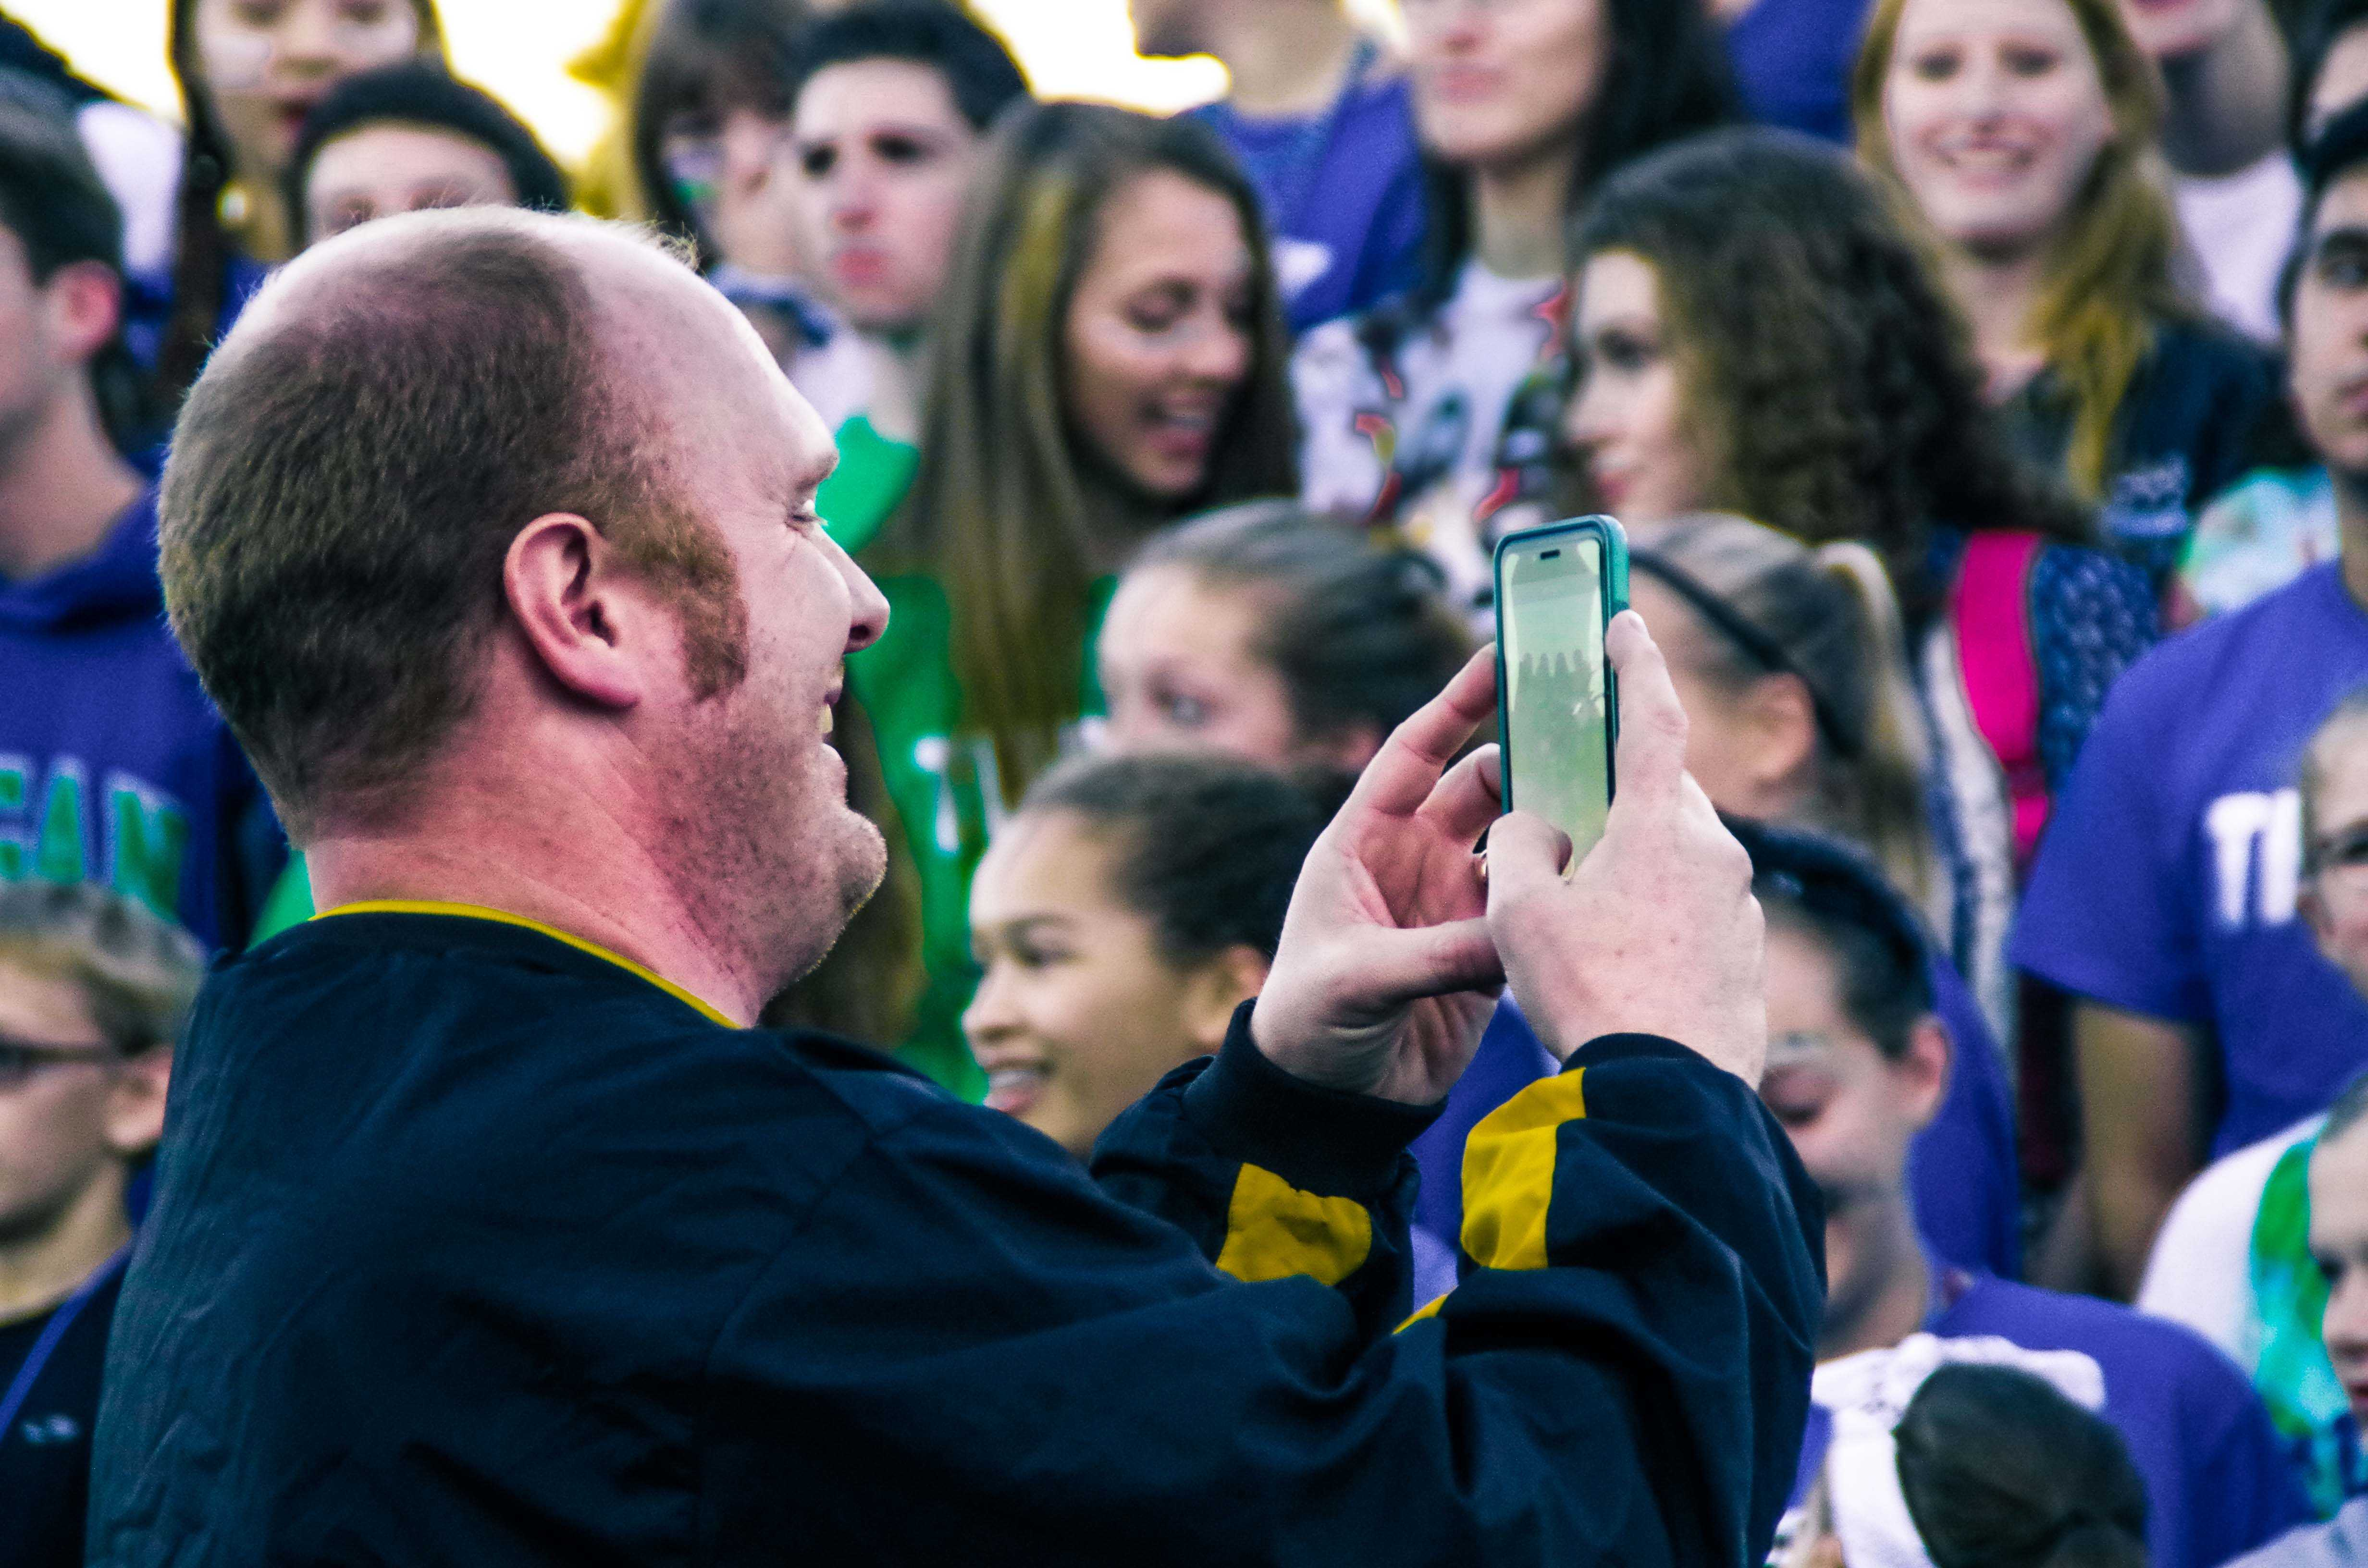 Mr. Cox snaps a pic of Concert Choir